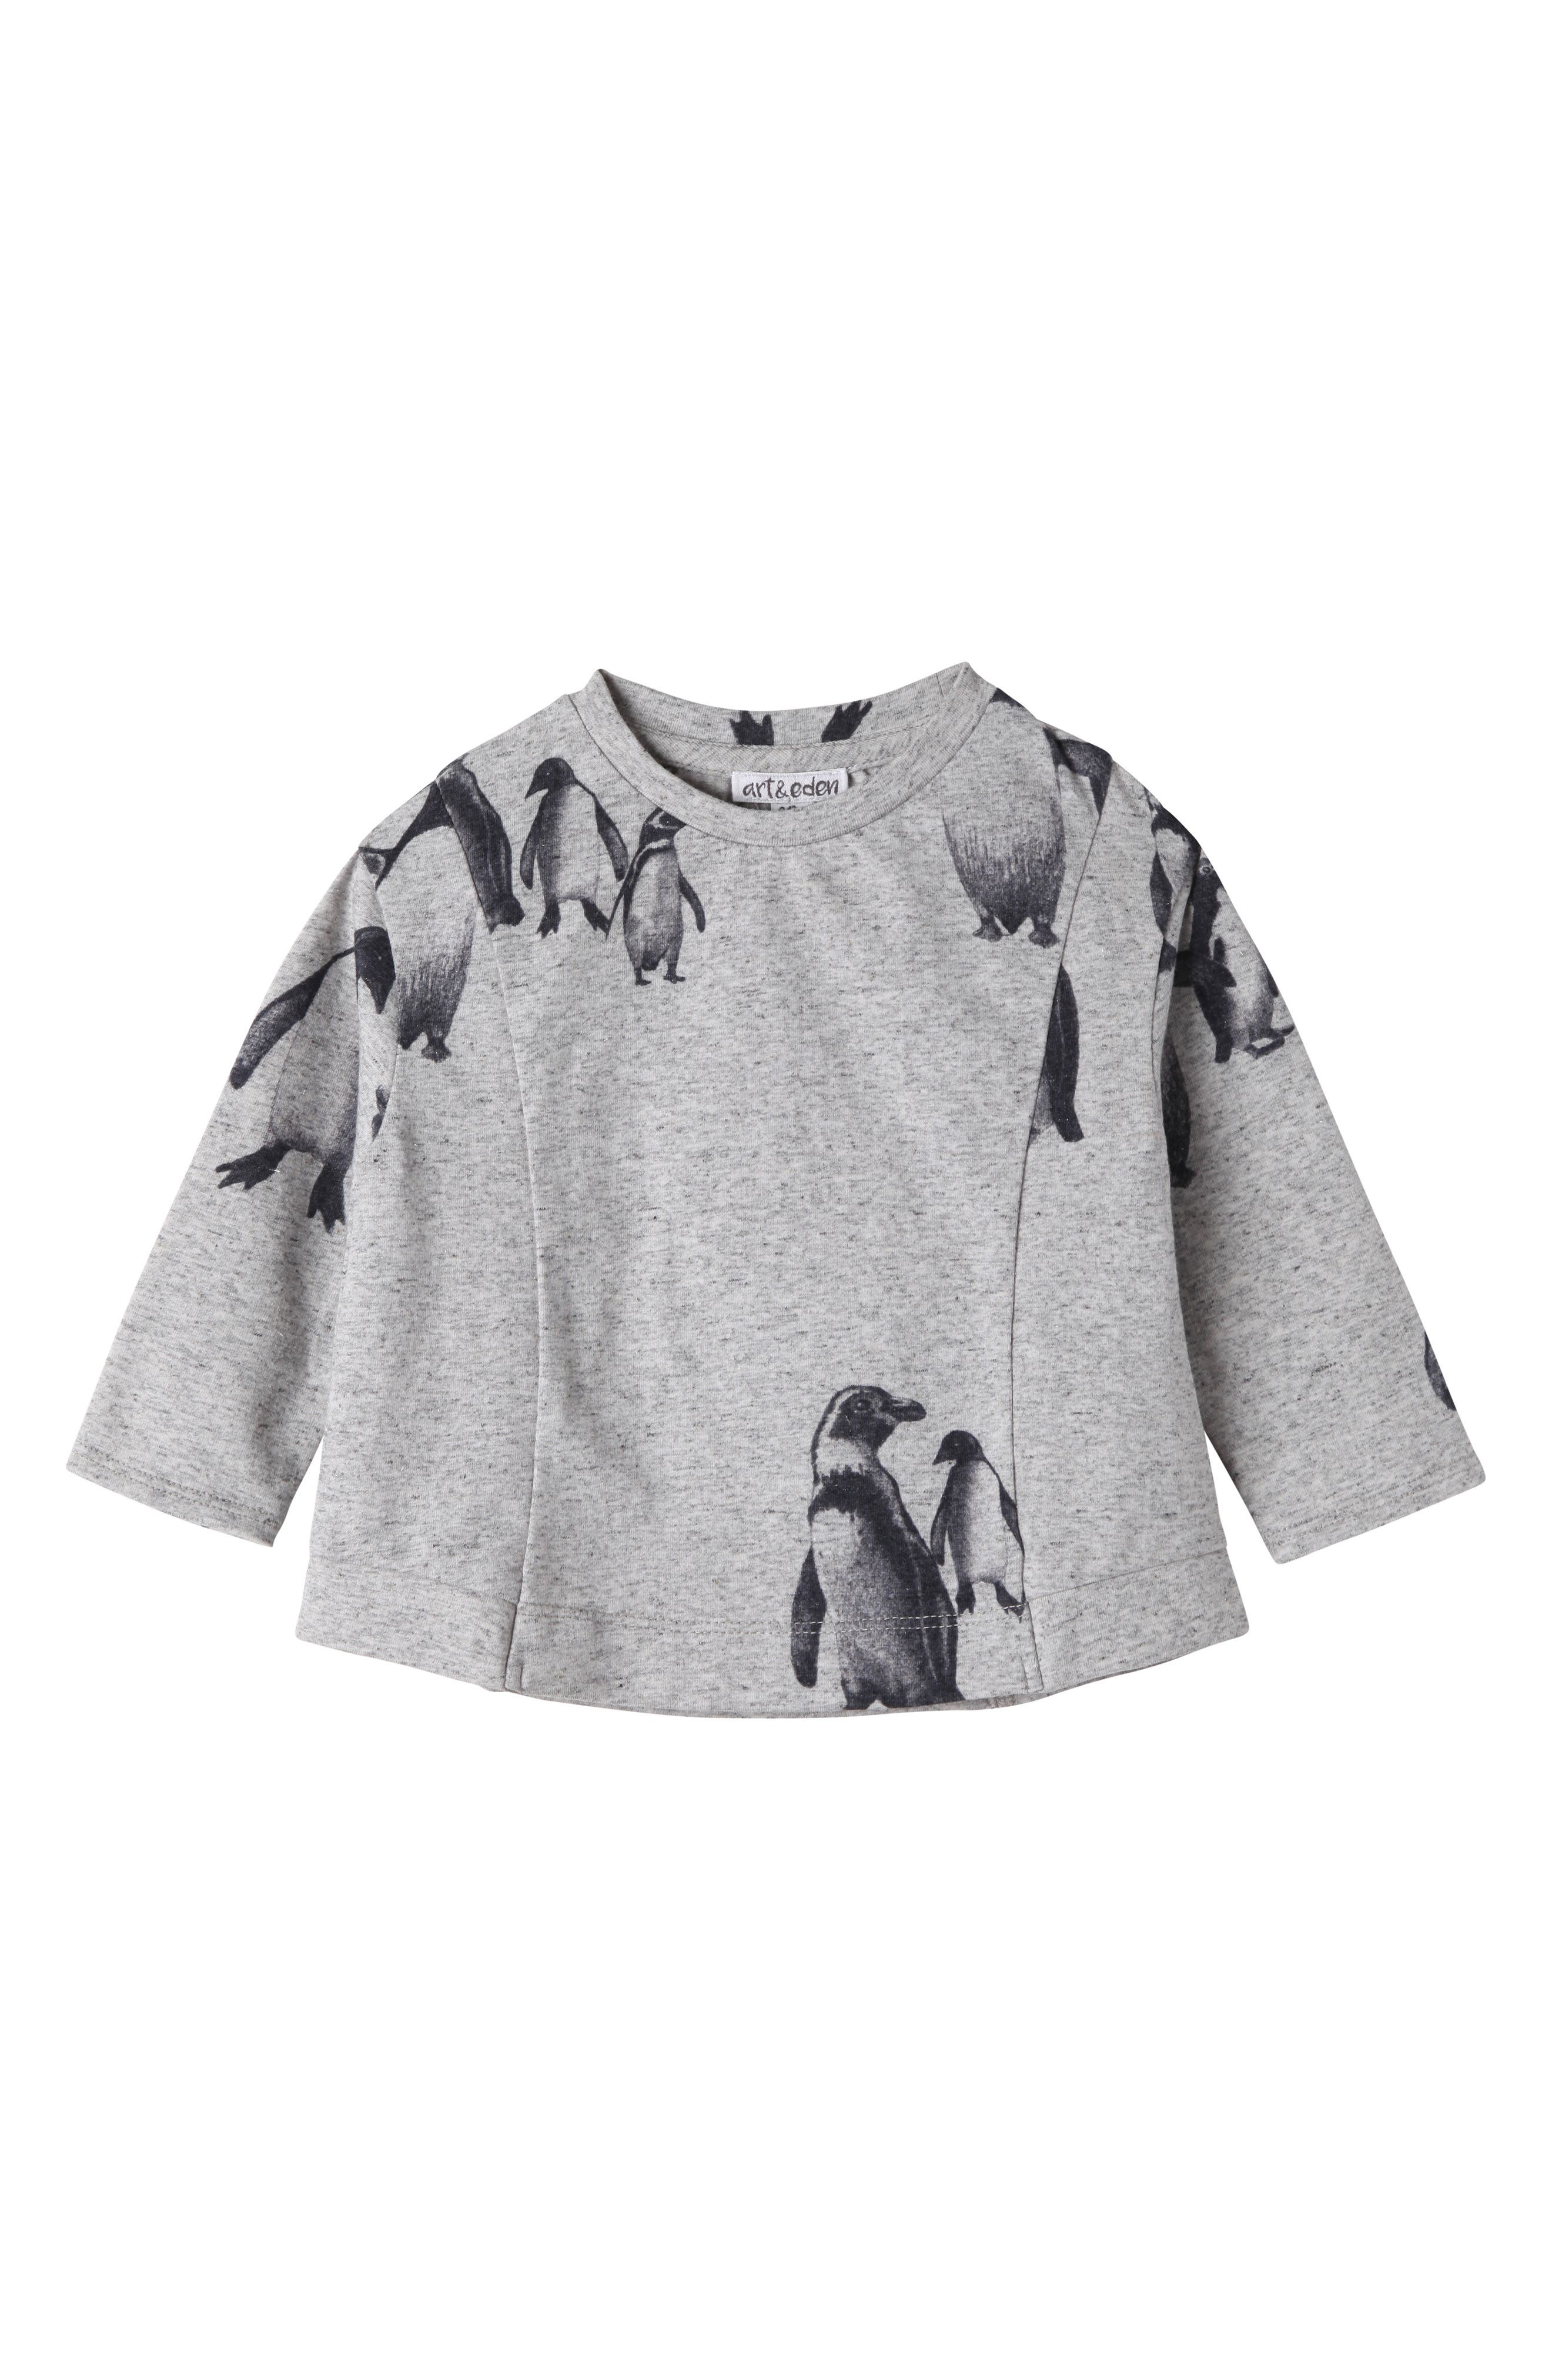 Penguin Graphic Tee,                             Main thumbnail 1, color,                             Grey